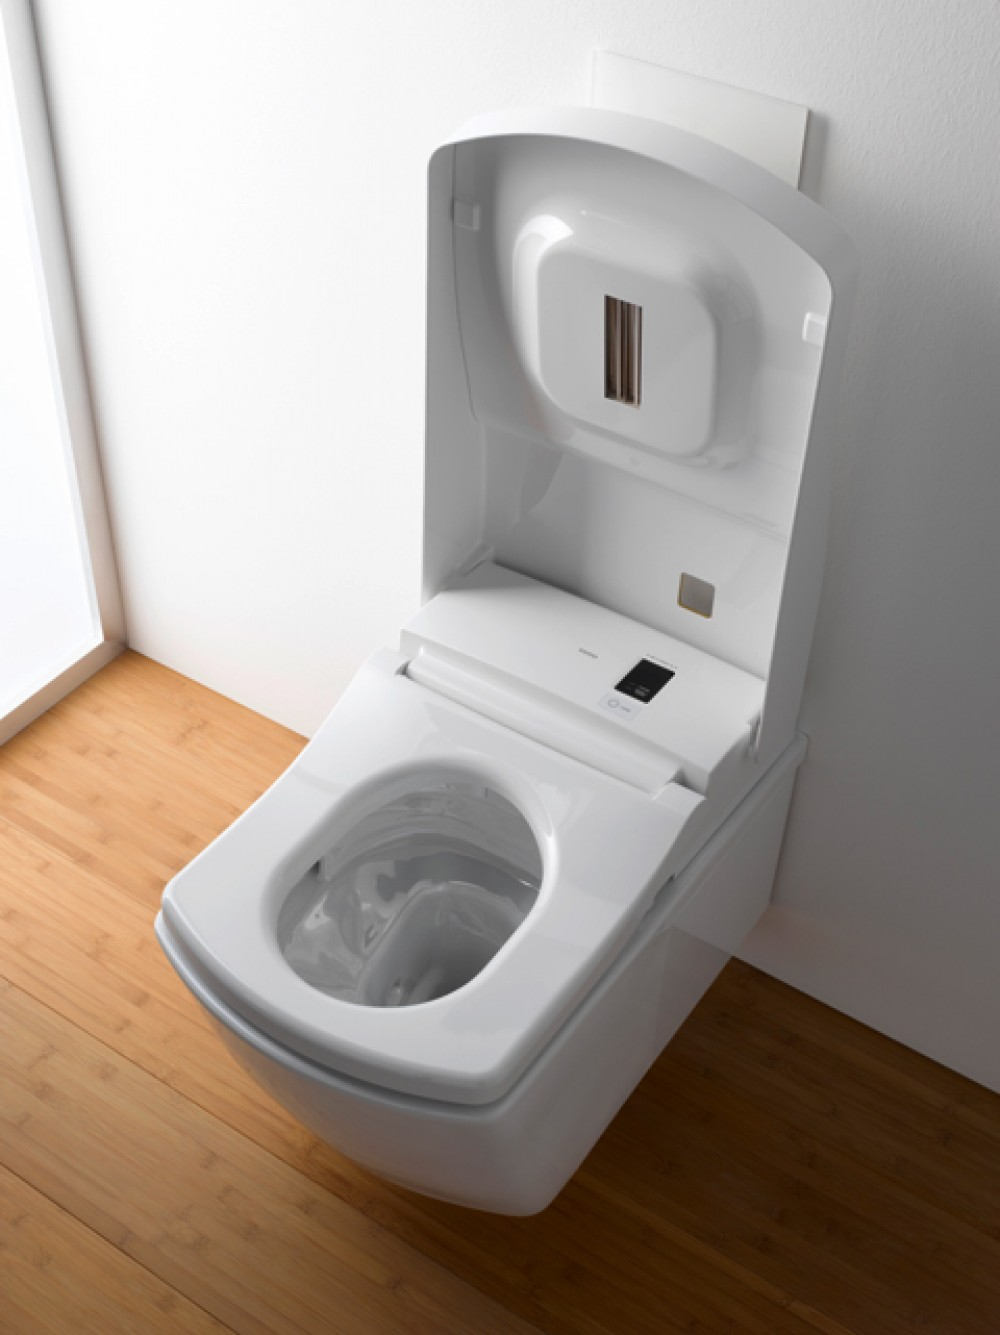 NEOREST Series NEOREST AC, WASHLET  inkl. Fernbedienung Produktnummer: TCF996WG#NW1 , TCF996WGE#NW1 , TCF996WSW#NW1 CW996P#NW1